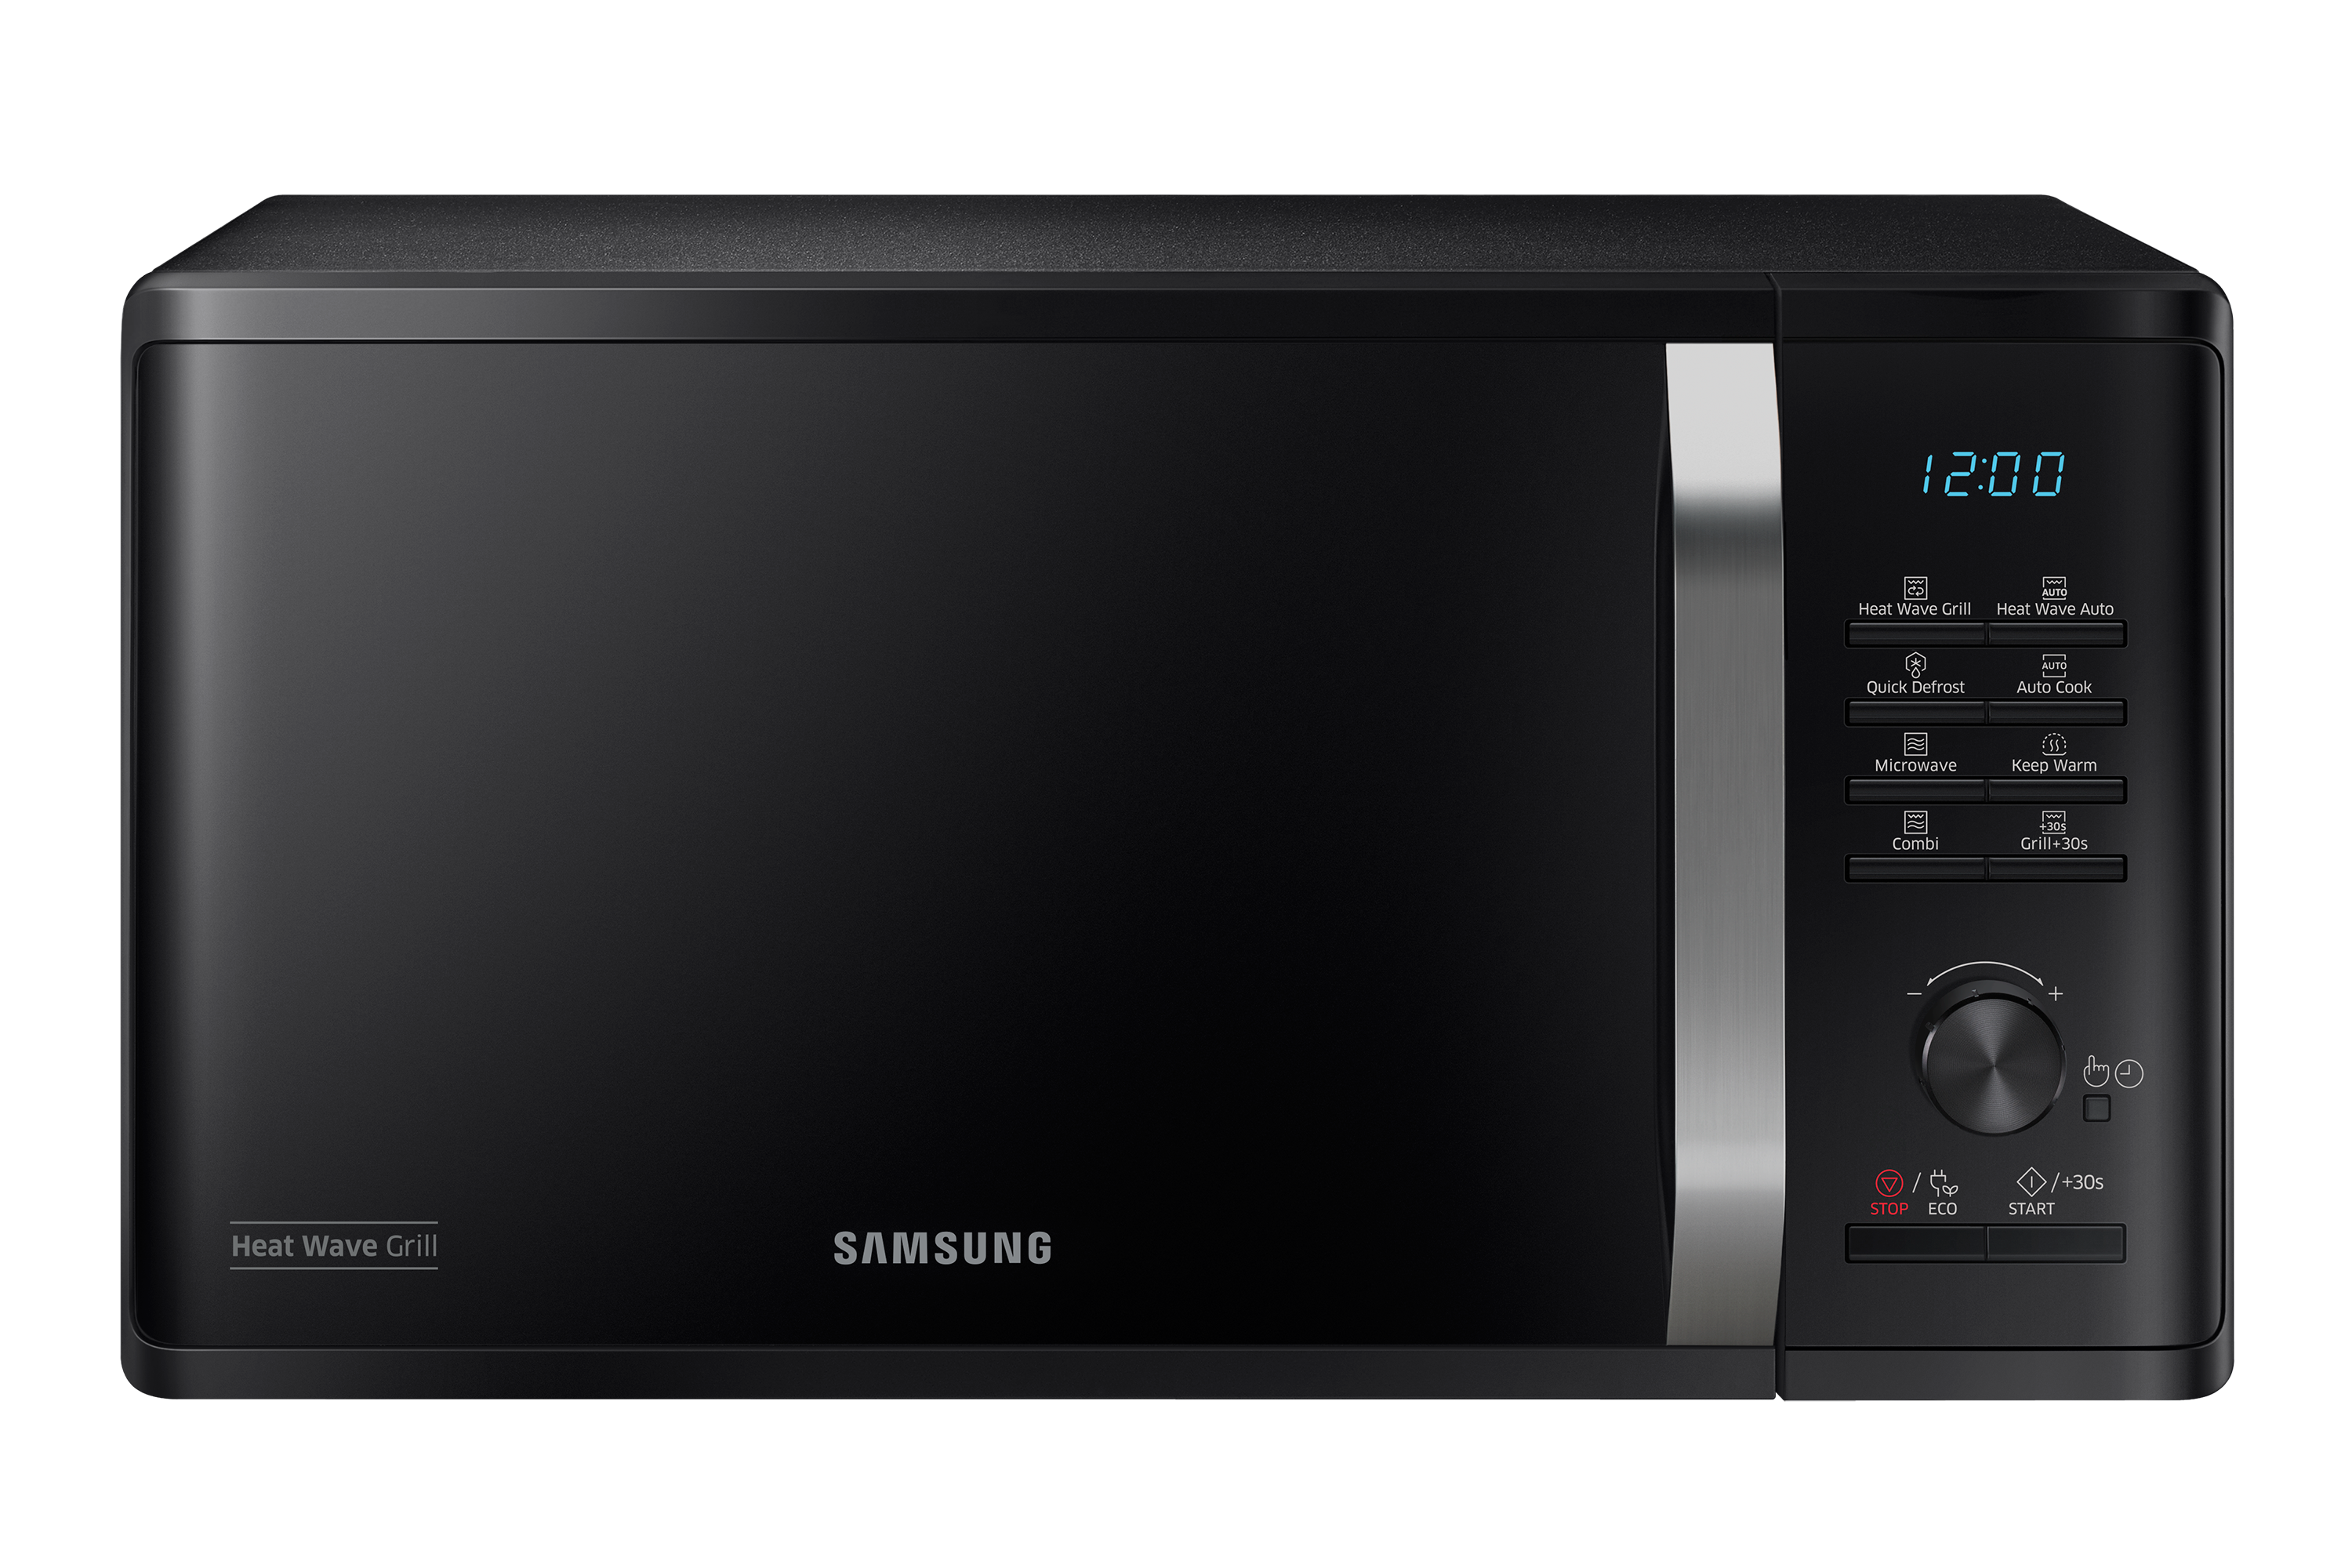 Mw3500k Microwave Oven With Heat Wave Grill 23l Samsung